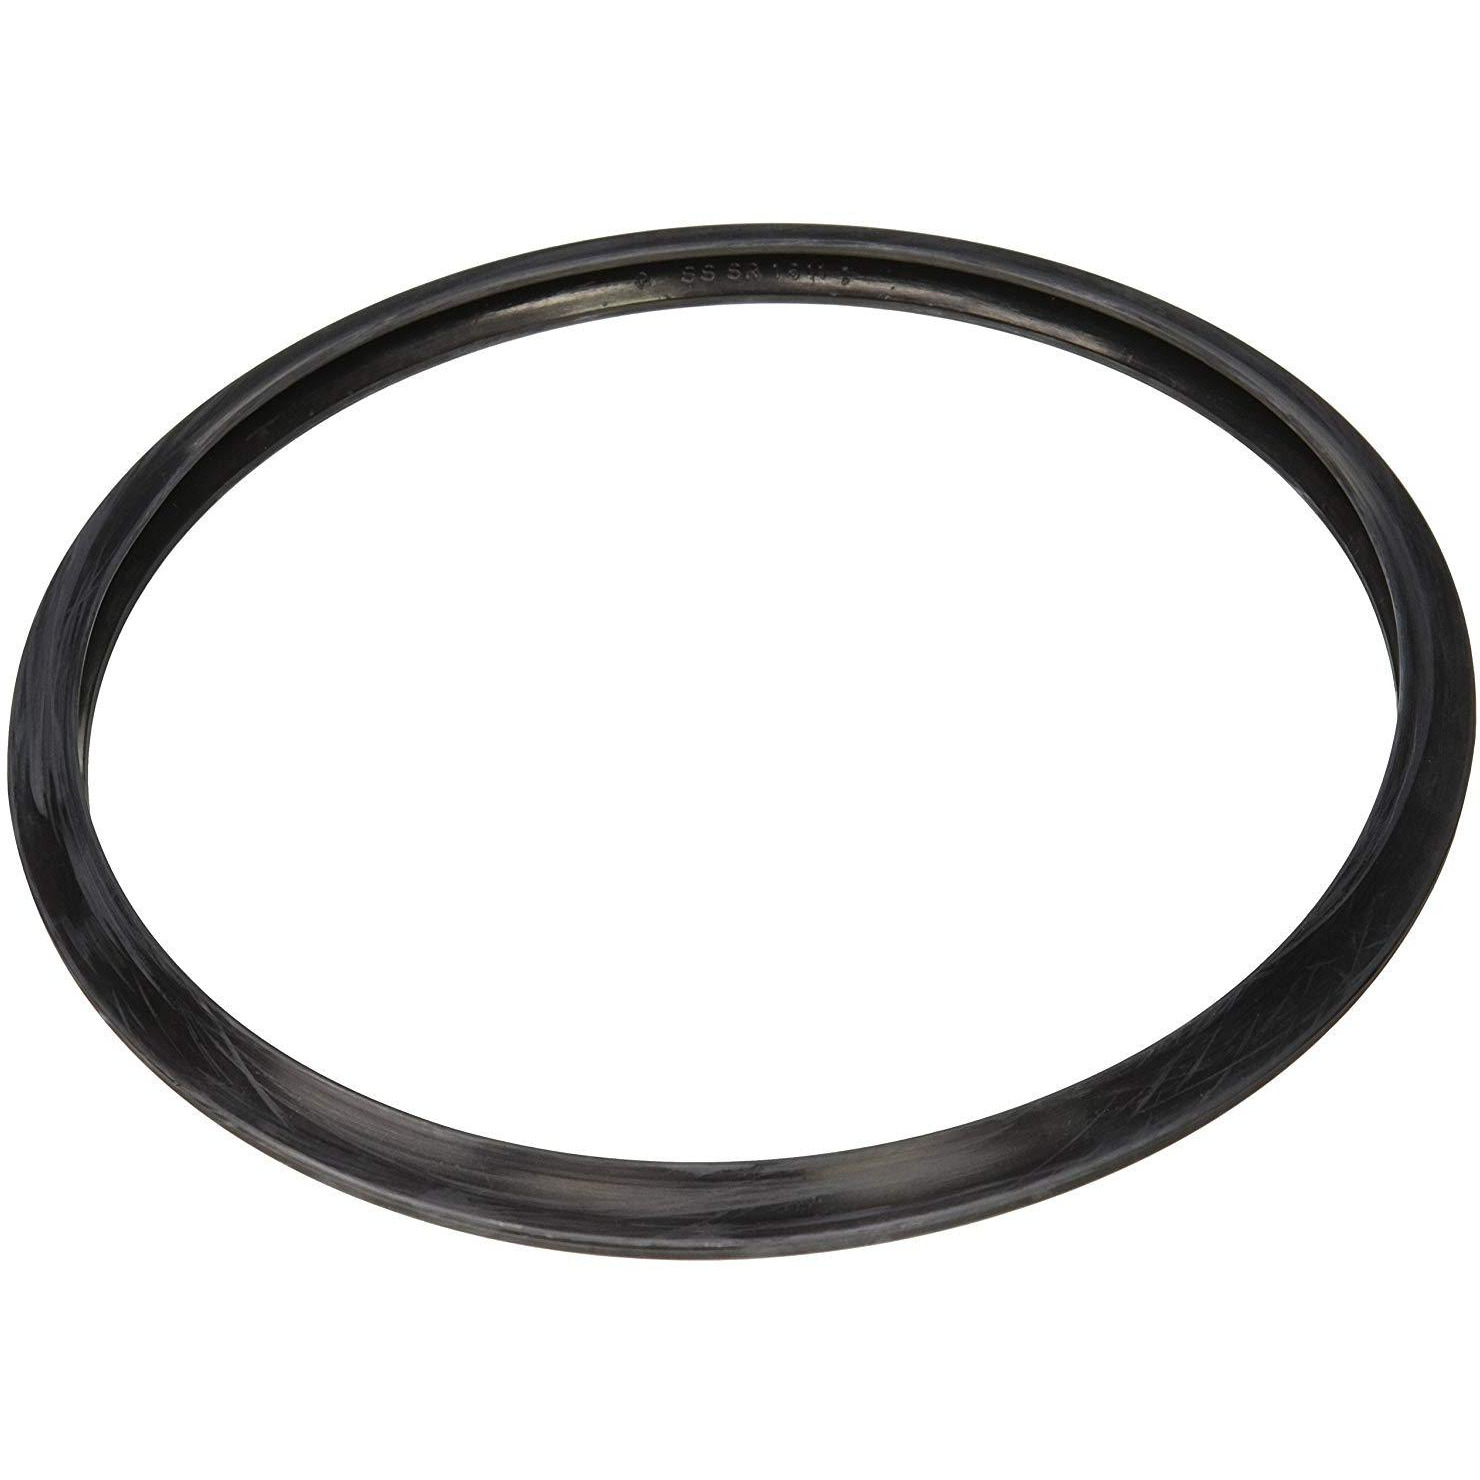 Prestige Senior Sealing Ring Gasket for Deluxe Plus Stainless Steel 6.5/8/10-Liter Pressure Cookers , Deep Pressure Pans